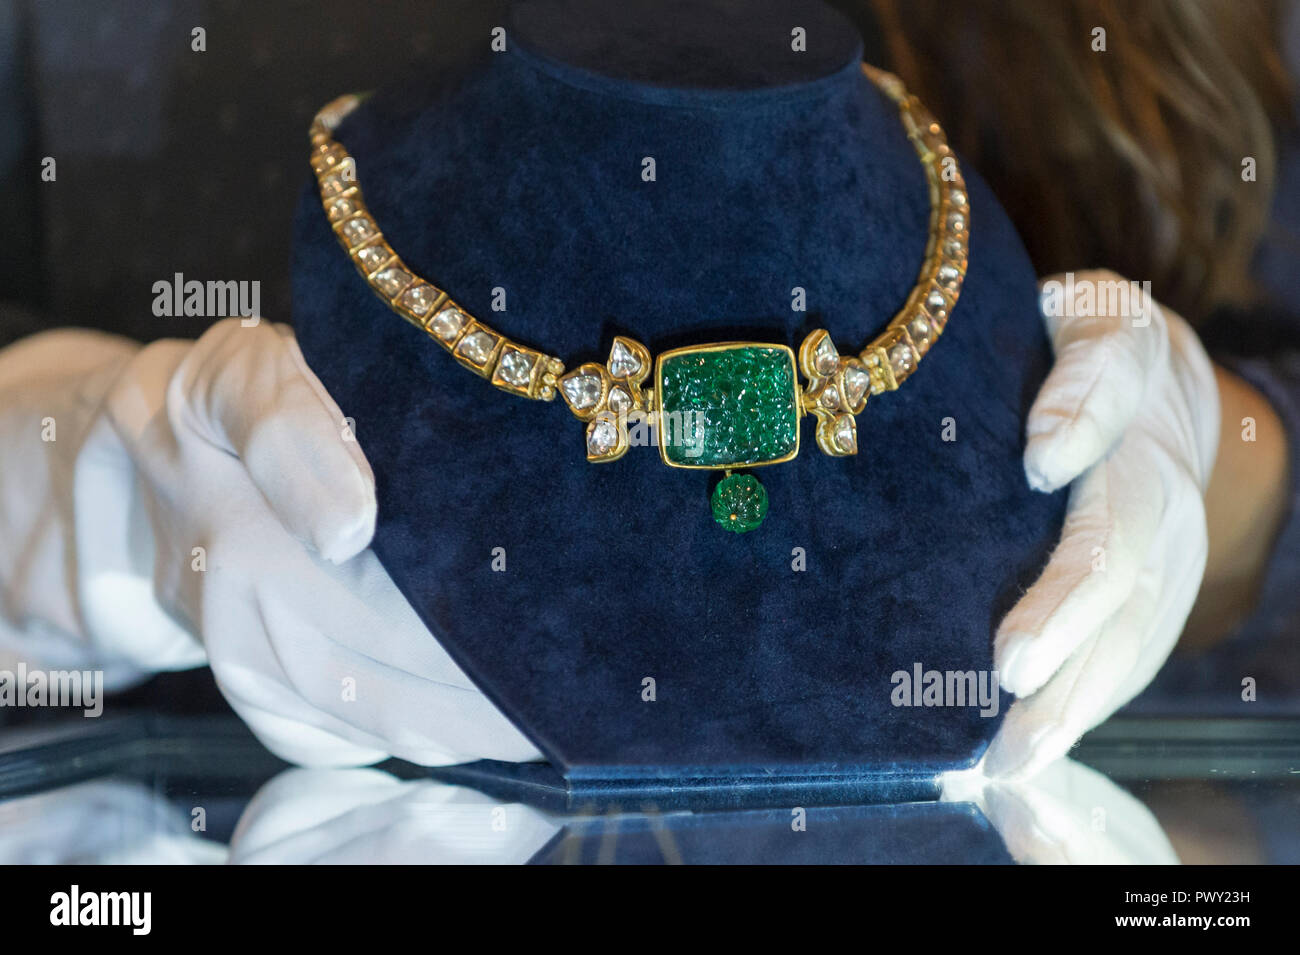 London, UK.  18 October 2018.  A staff member presents 'An emerald and diamond-set necklace', India, late 19th century (Est. GBP15,000 to 20,000). Preview of Bonhams Asian Art Week which features works to be offered in the Islamic and Indian, Modern and Contemporary Middle Eastern art sale on 23 October and Modern and Contemporary South Asian art sale on 24 October.   Credit: Stephen Chung / Alamy Live News - Stock Image